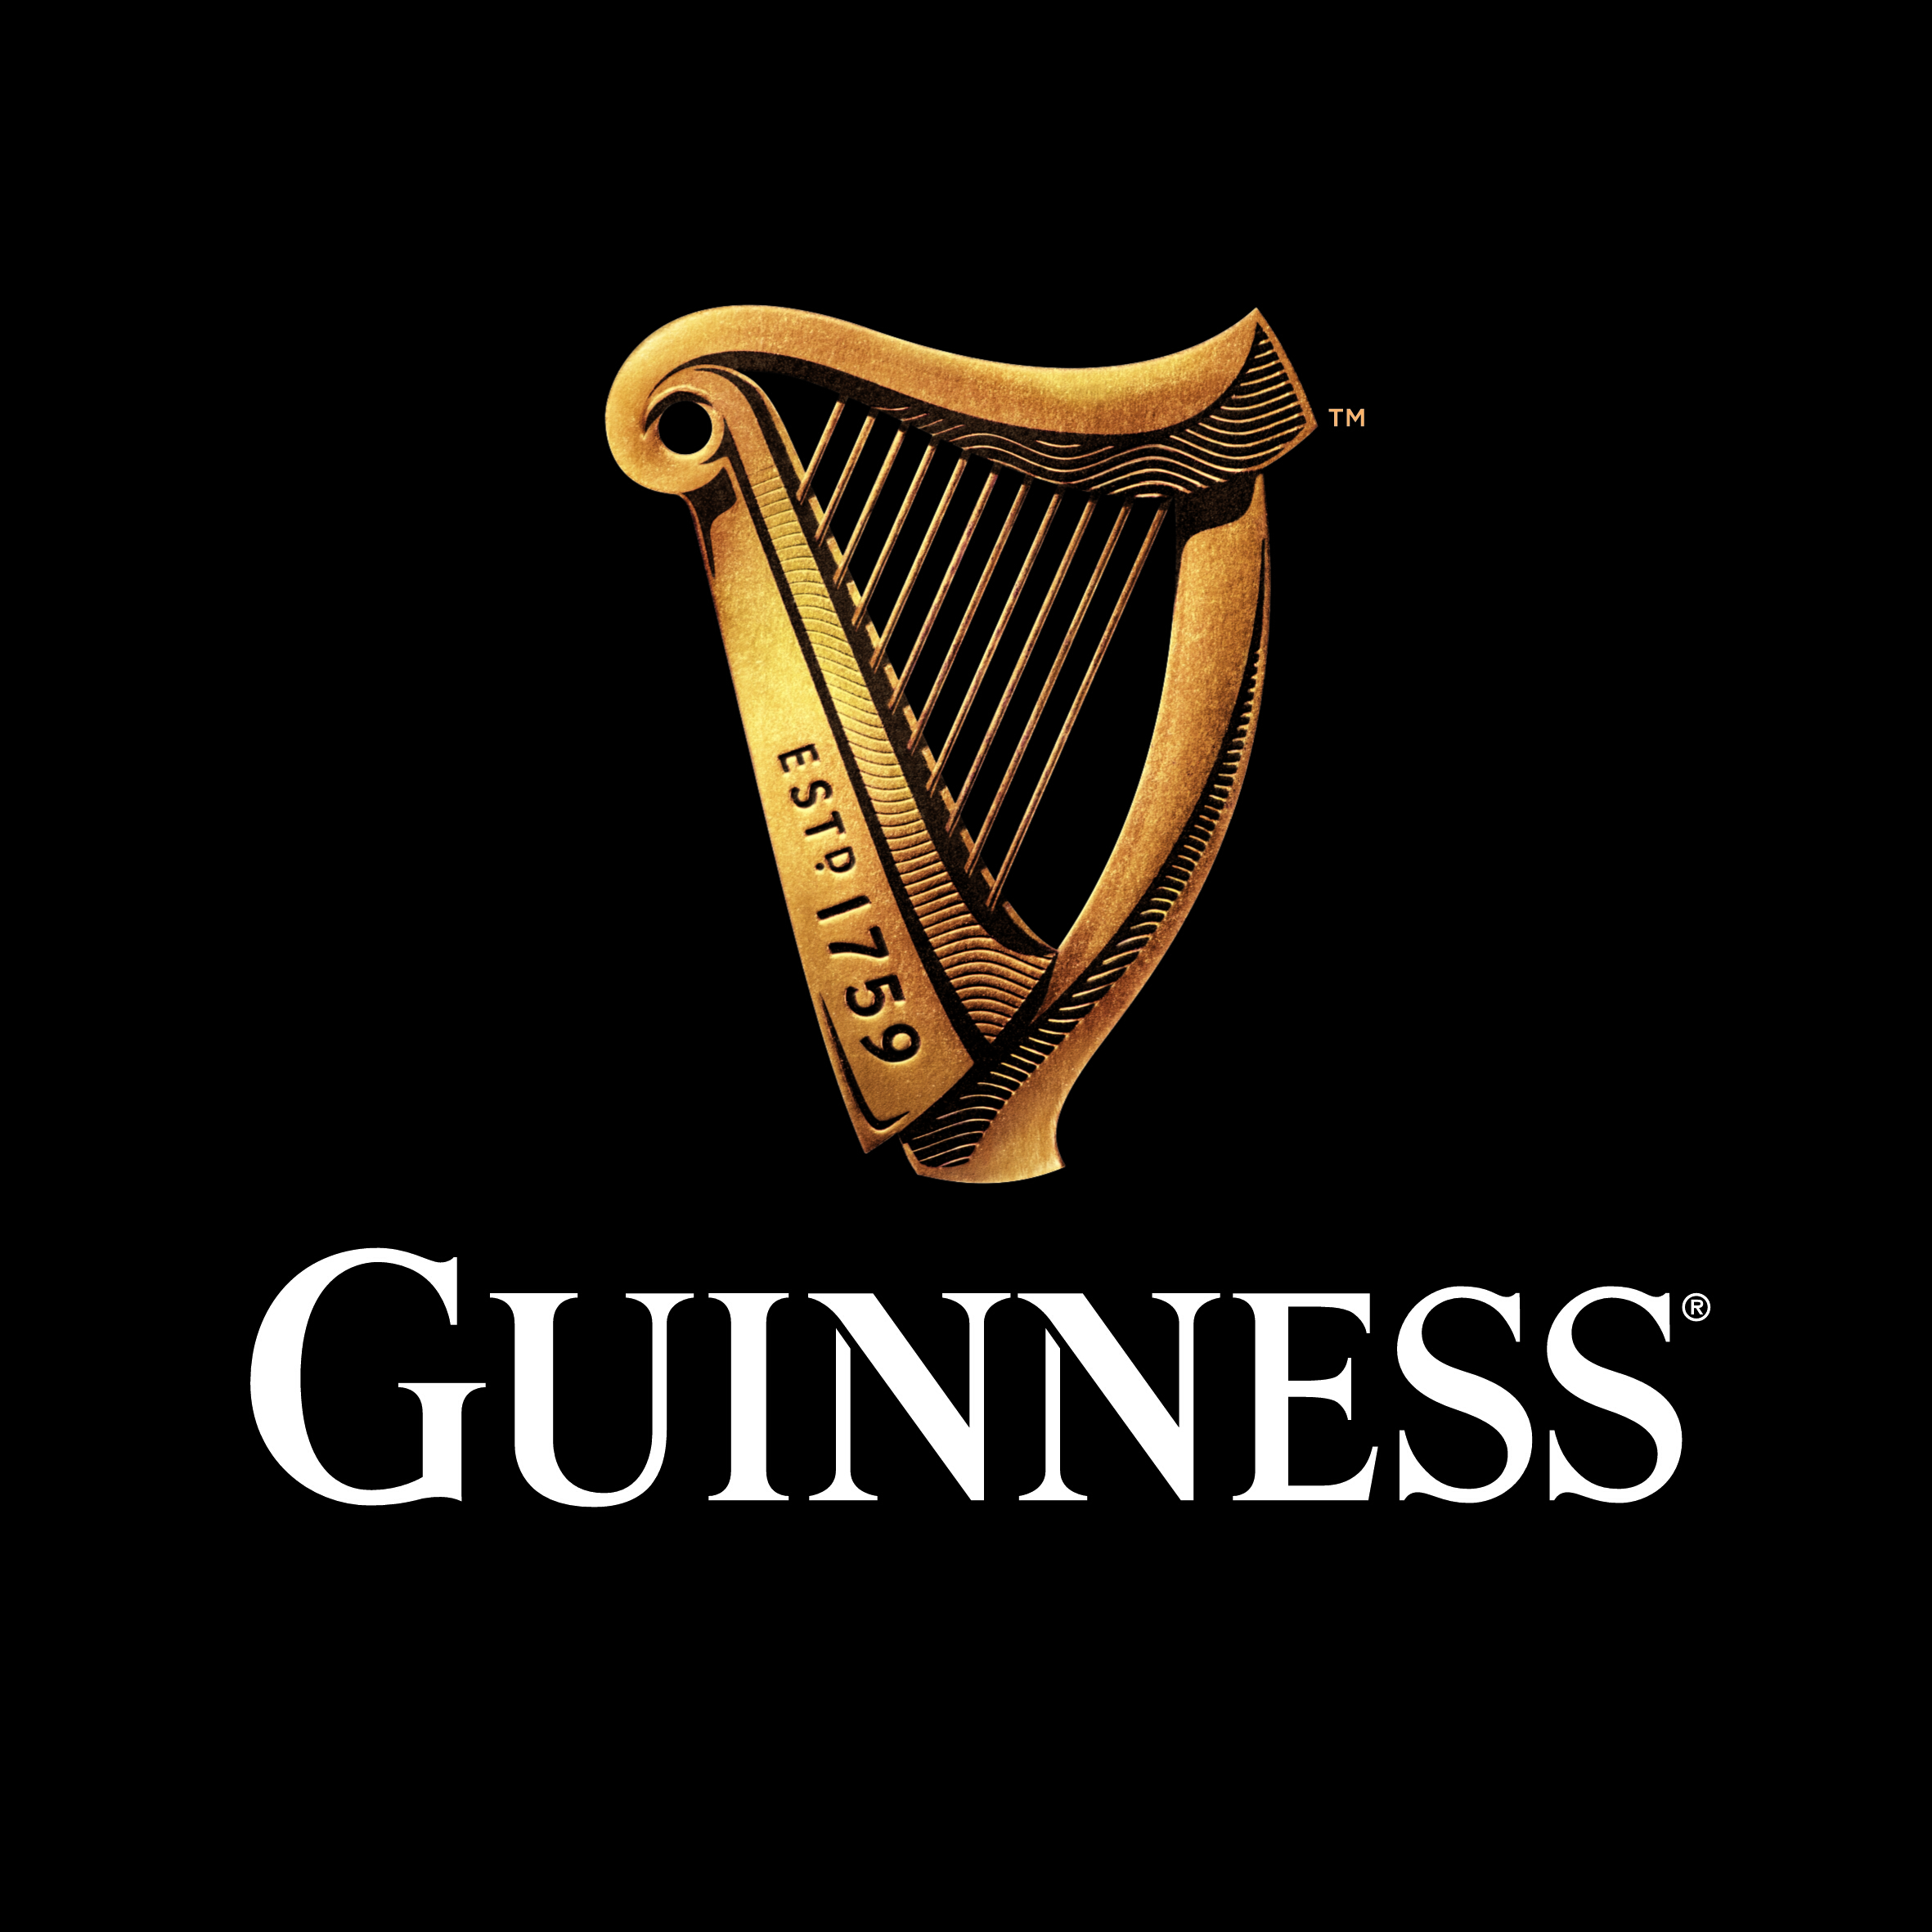 044162_GUINNESS_R_CORE_HARP_VERTICAL_CMYK